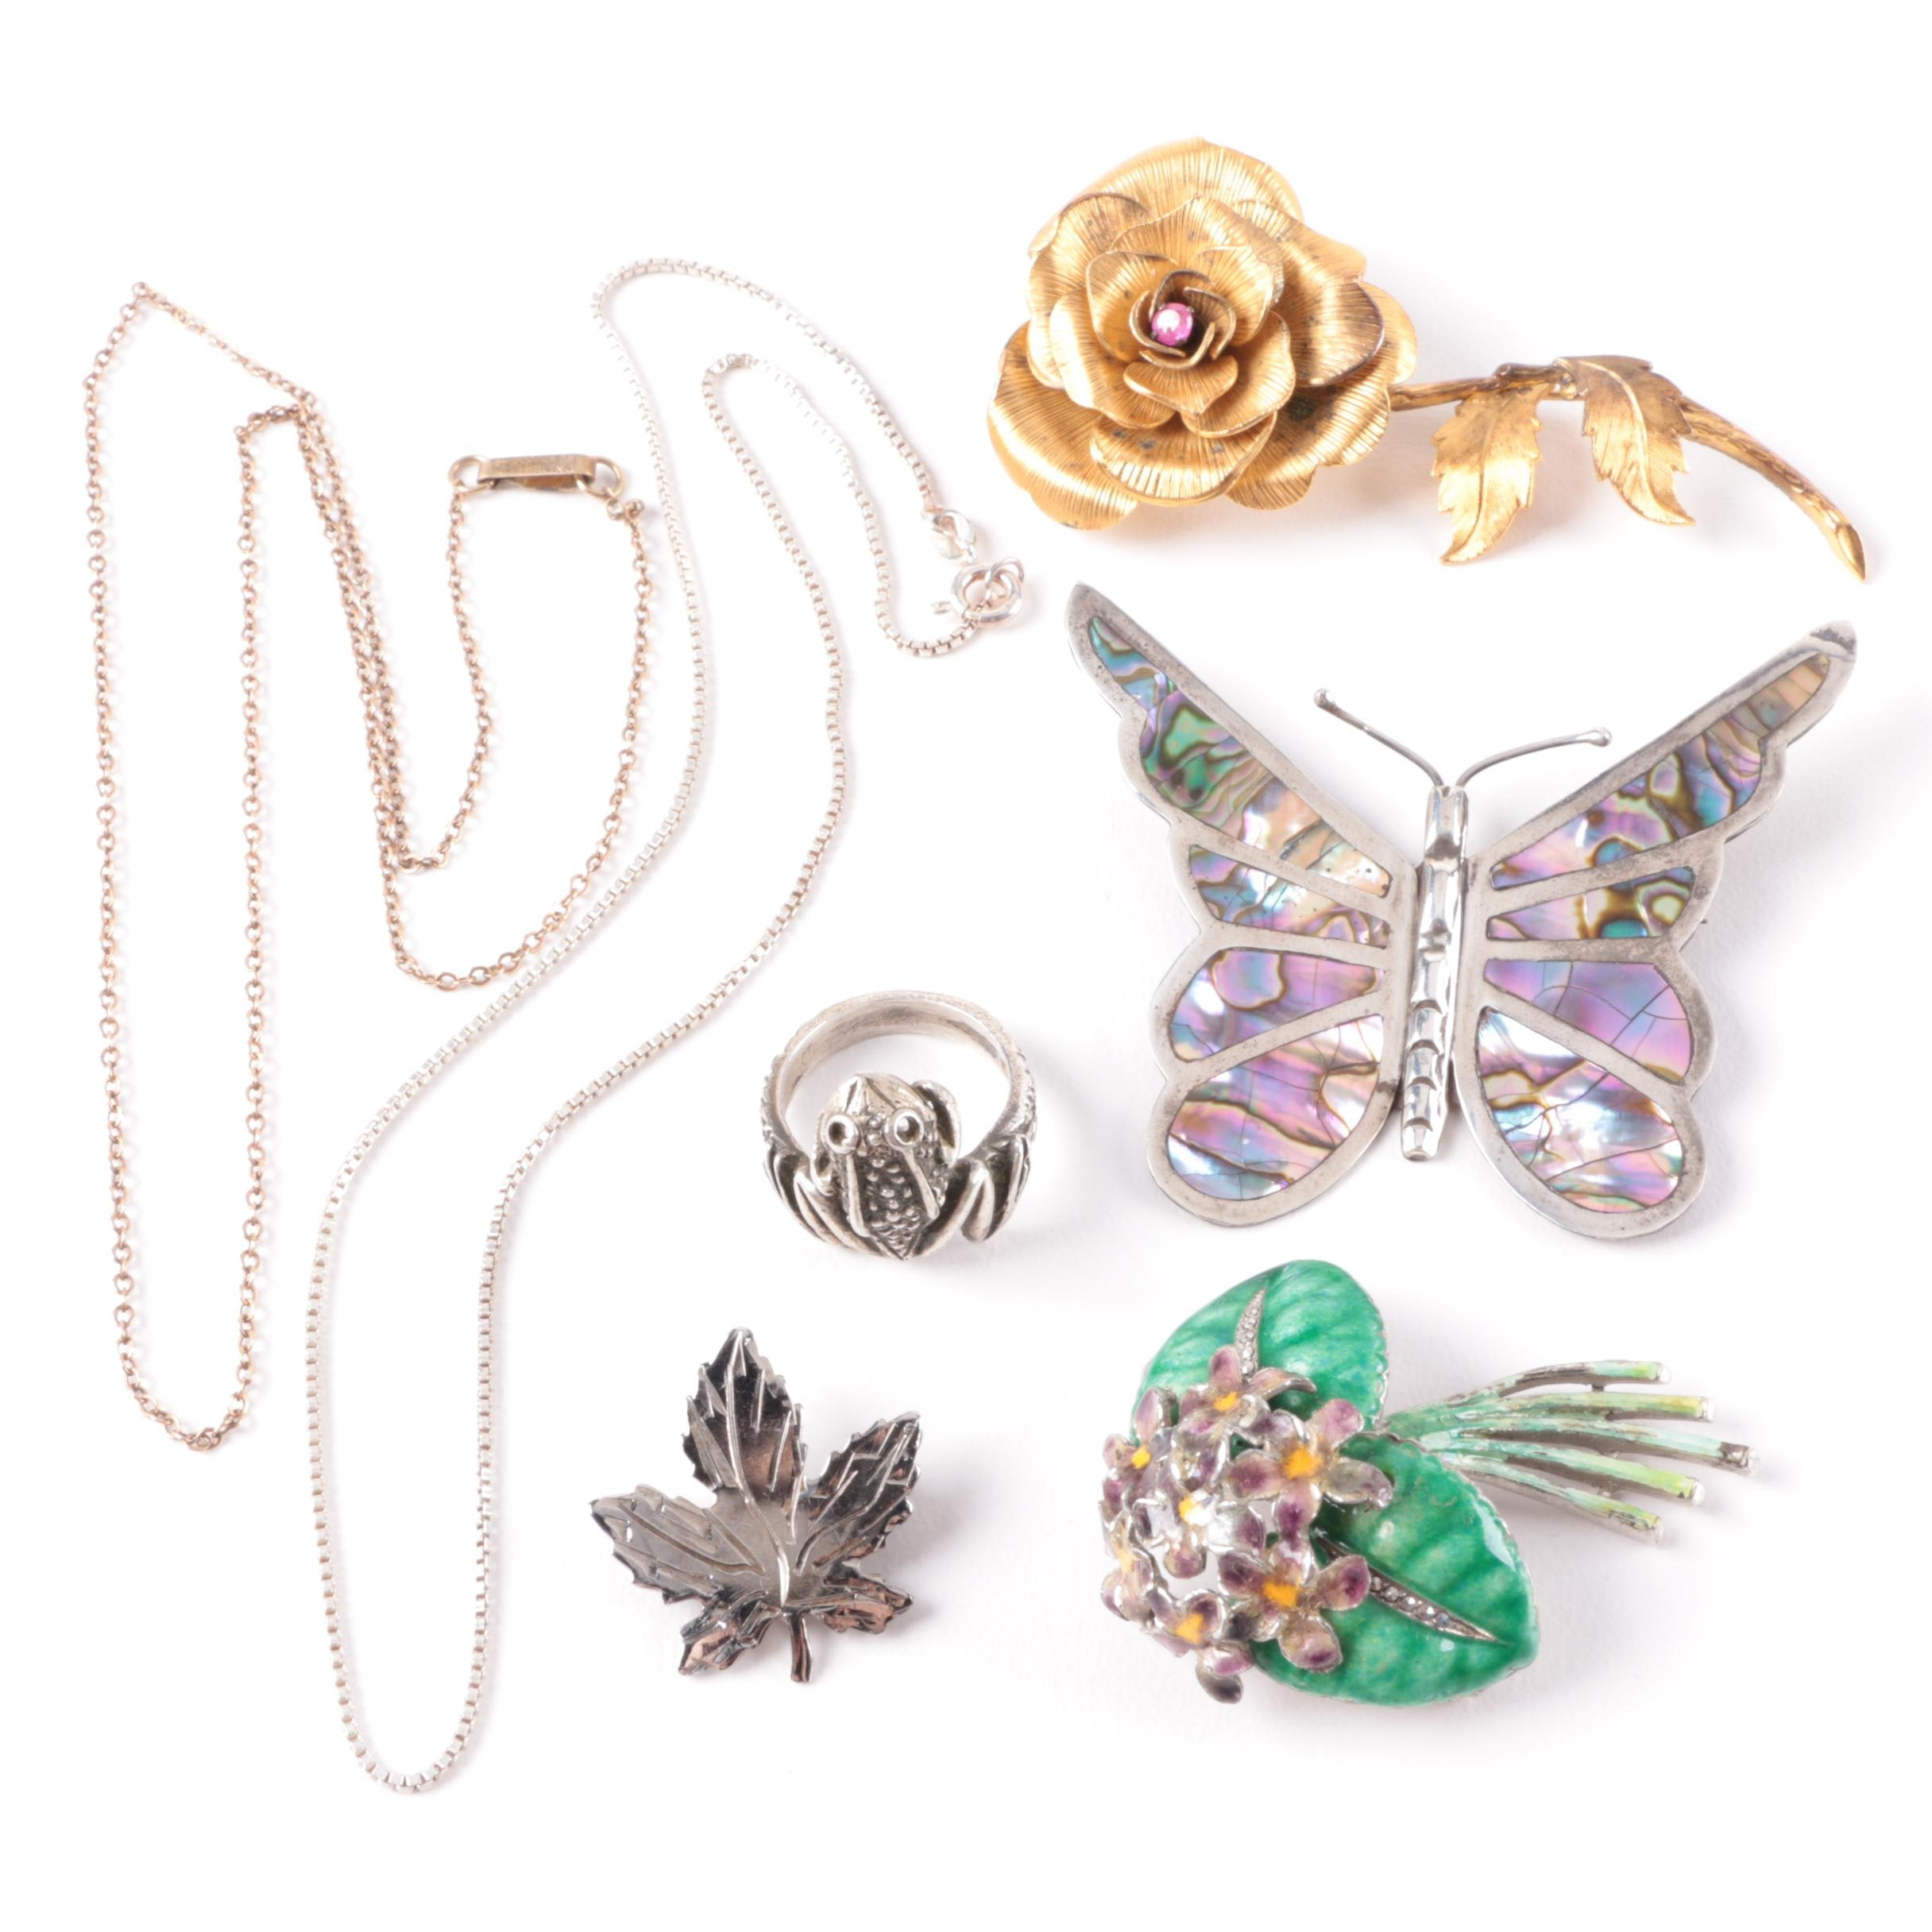 Selection of Sterling Silver Abalone, Marcasite and Enamel Jewelry